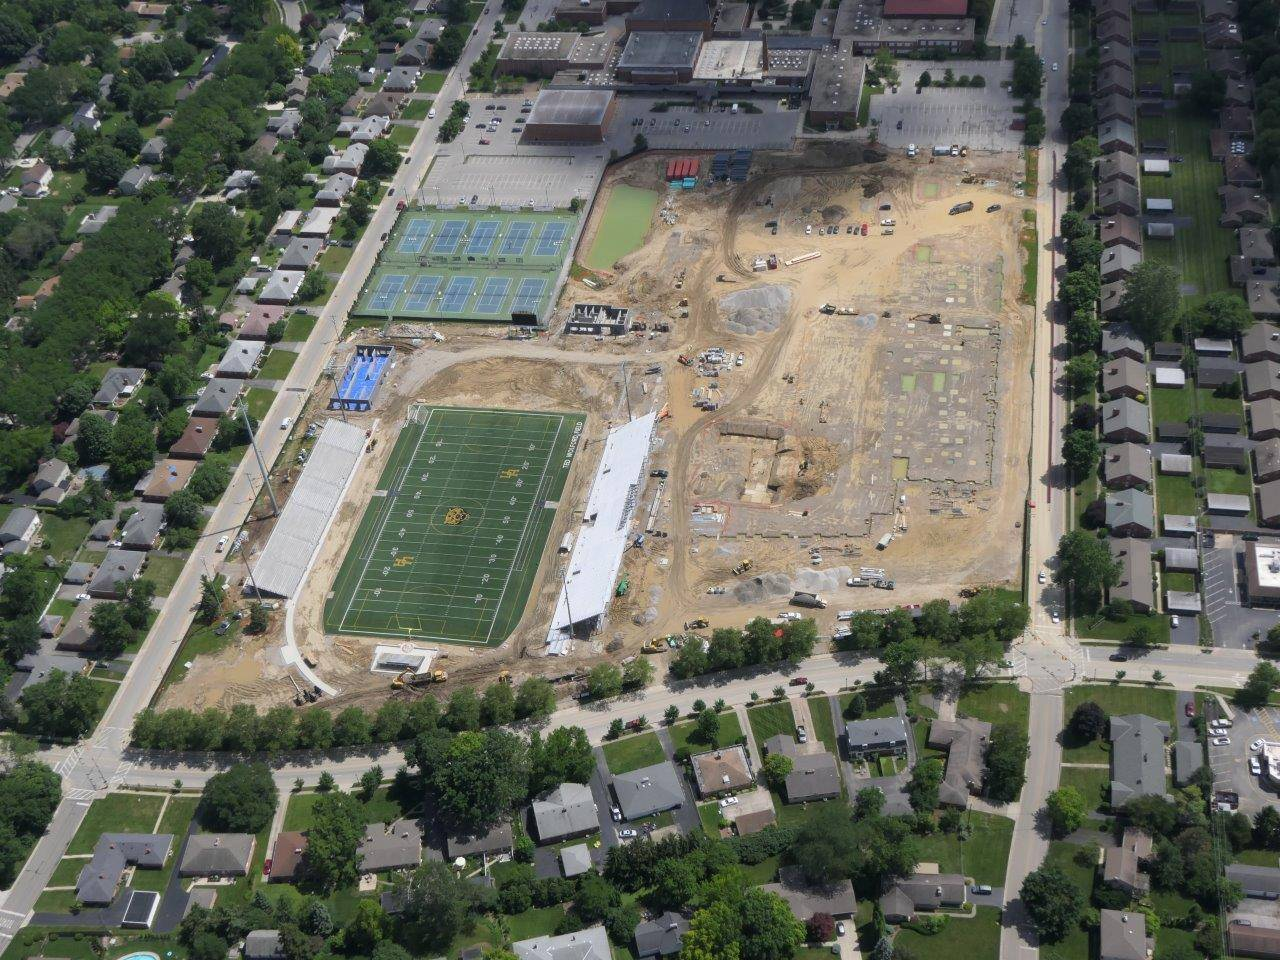 High School site aerial looking south